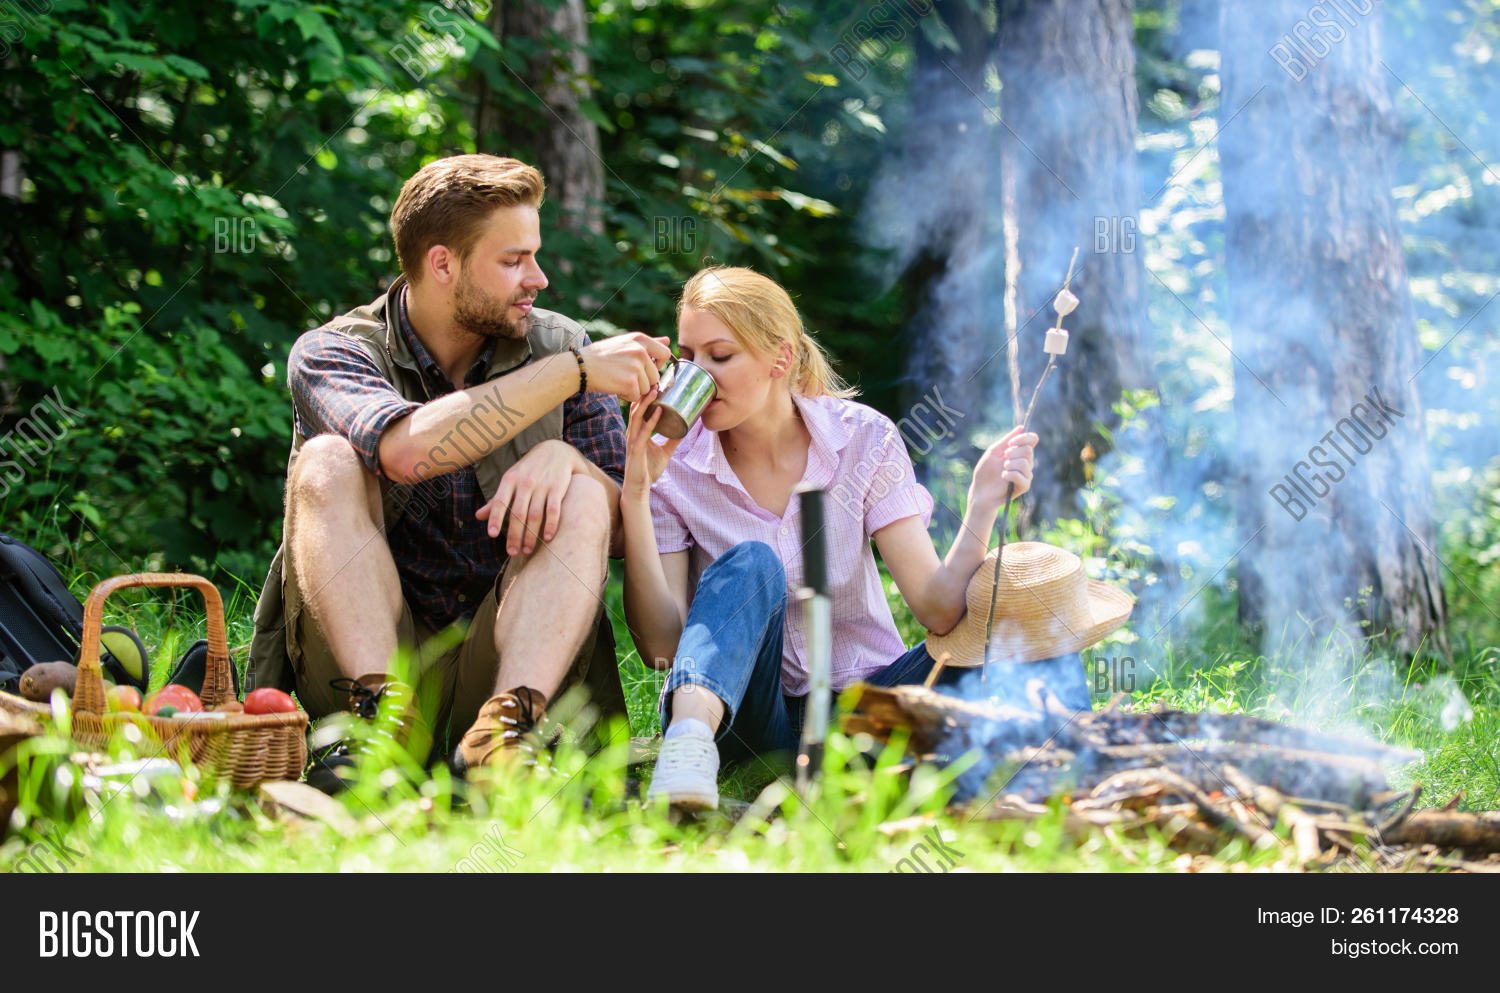 background,barbecue,beverage,bonfire,break,campfire,camping,cooking,couple,date,drink,eat,environment,family,food,forest,friend,friendship,girl,guy,hike,hiker,hipster,idyllic,in,love,man,metallic,mug,natural,nature,picnic,rest,romantic,sit,smoke,snack,summer,take,tourism,travel,traveler,traveling,travelling,vacation,wanderer,wanderlust,woman